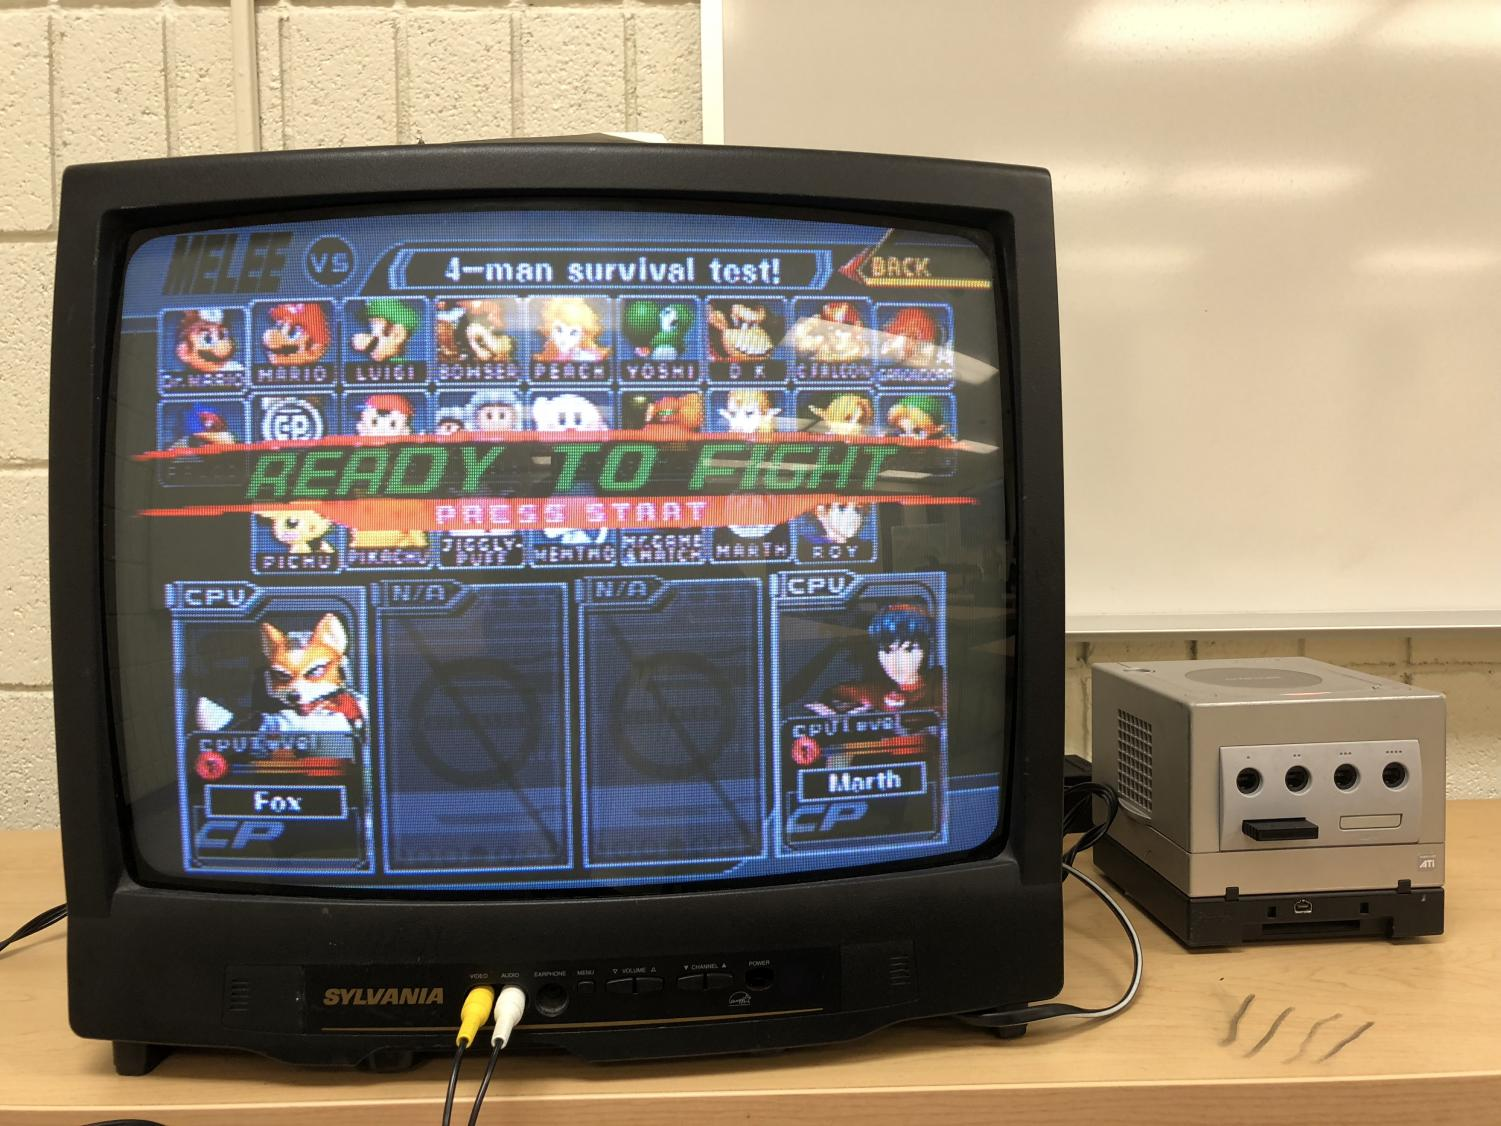 Marshall Smashers meets Mondays at 7 p.m. in Harris Hal room 102 to compete in playing various video games.